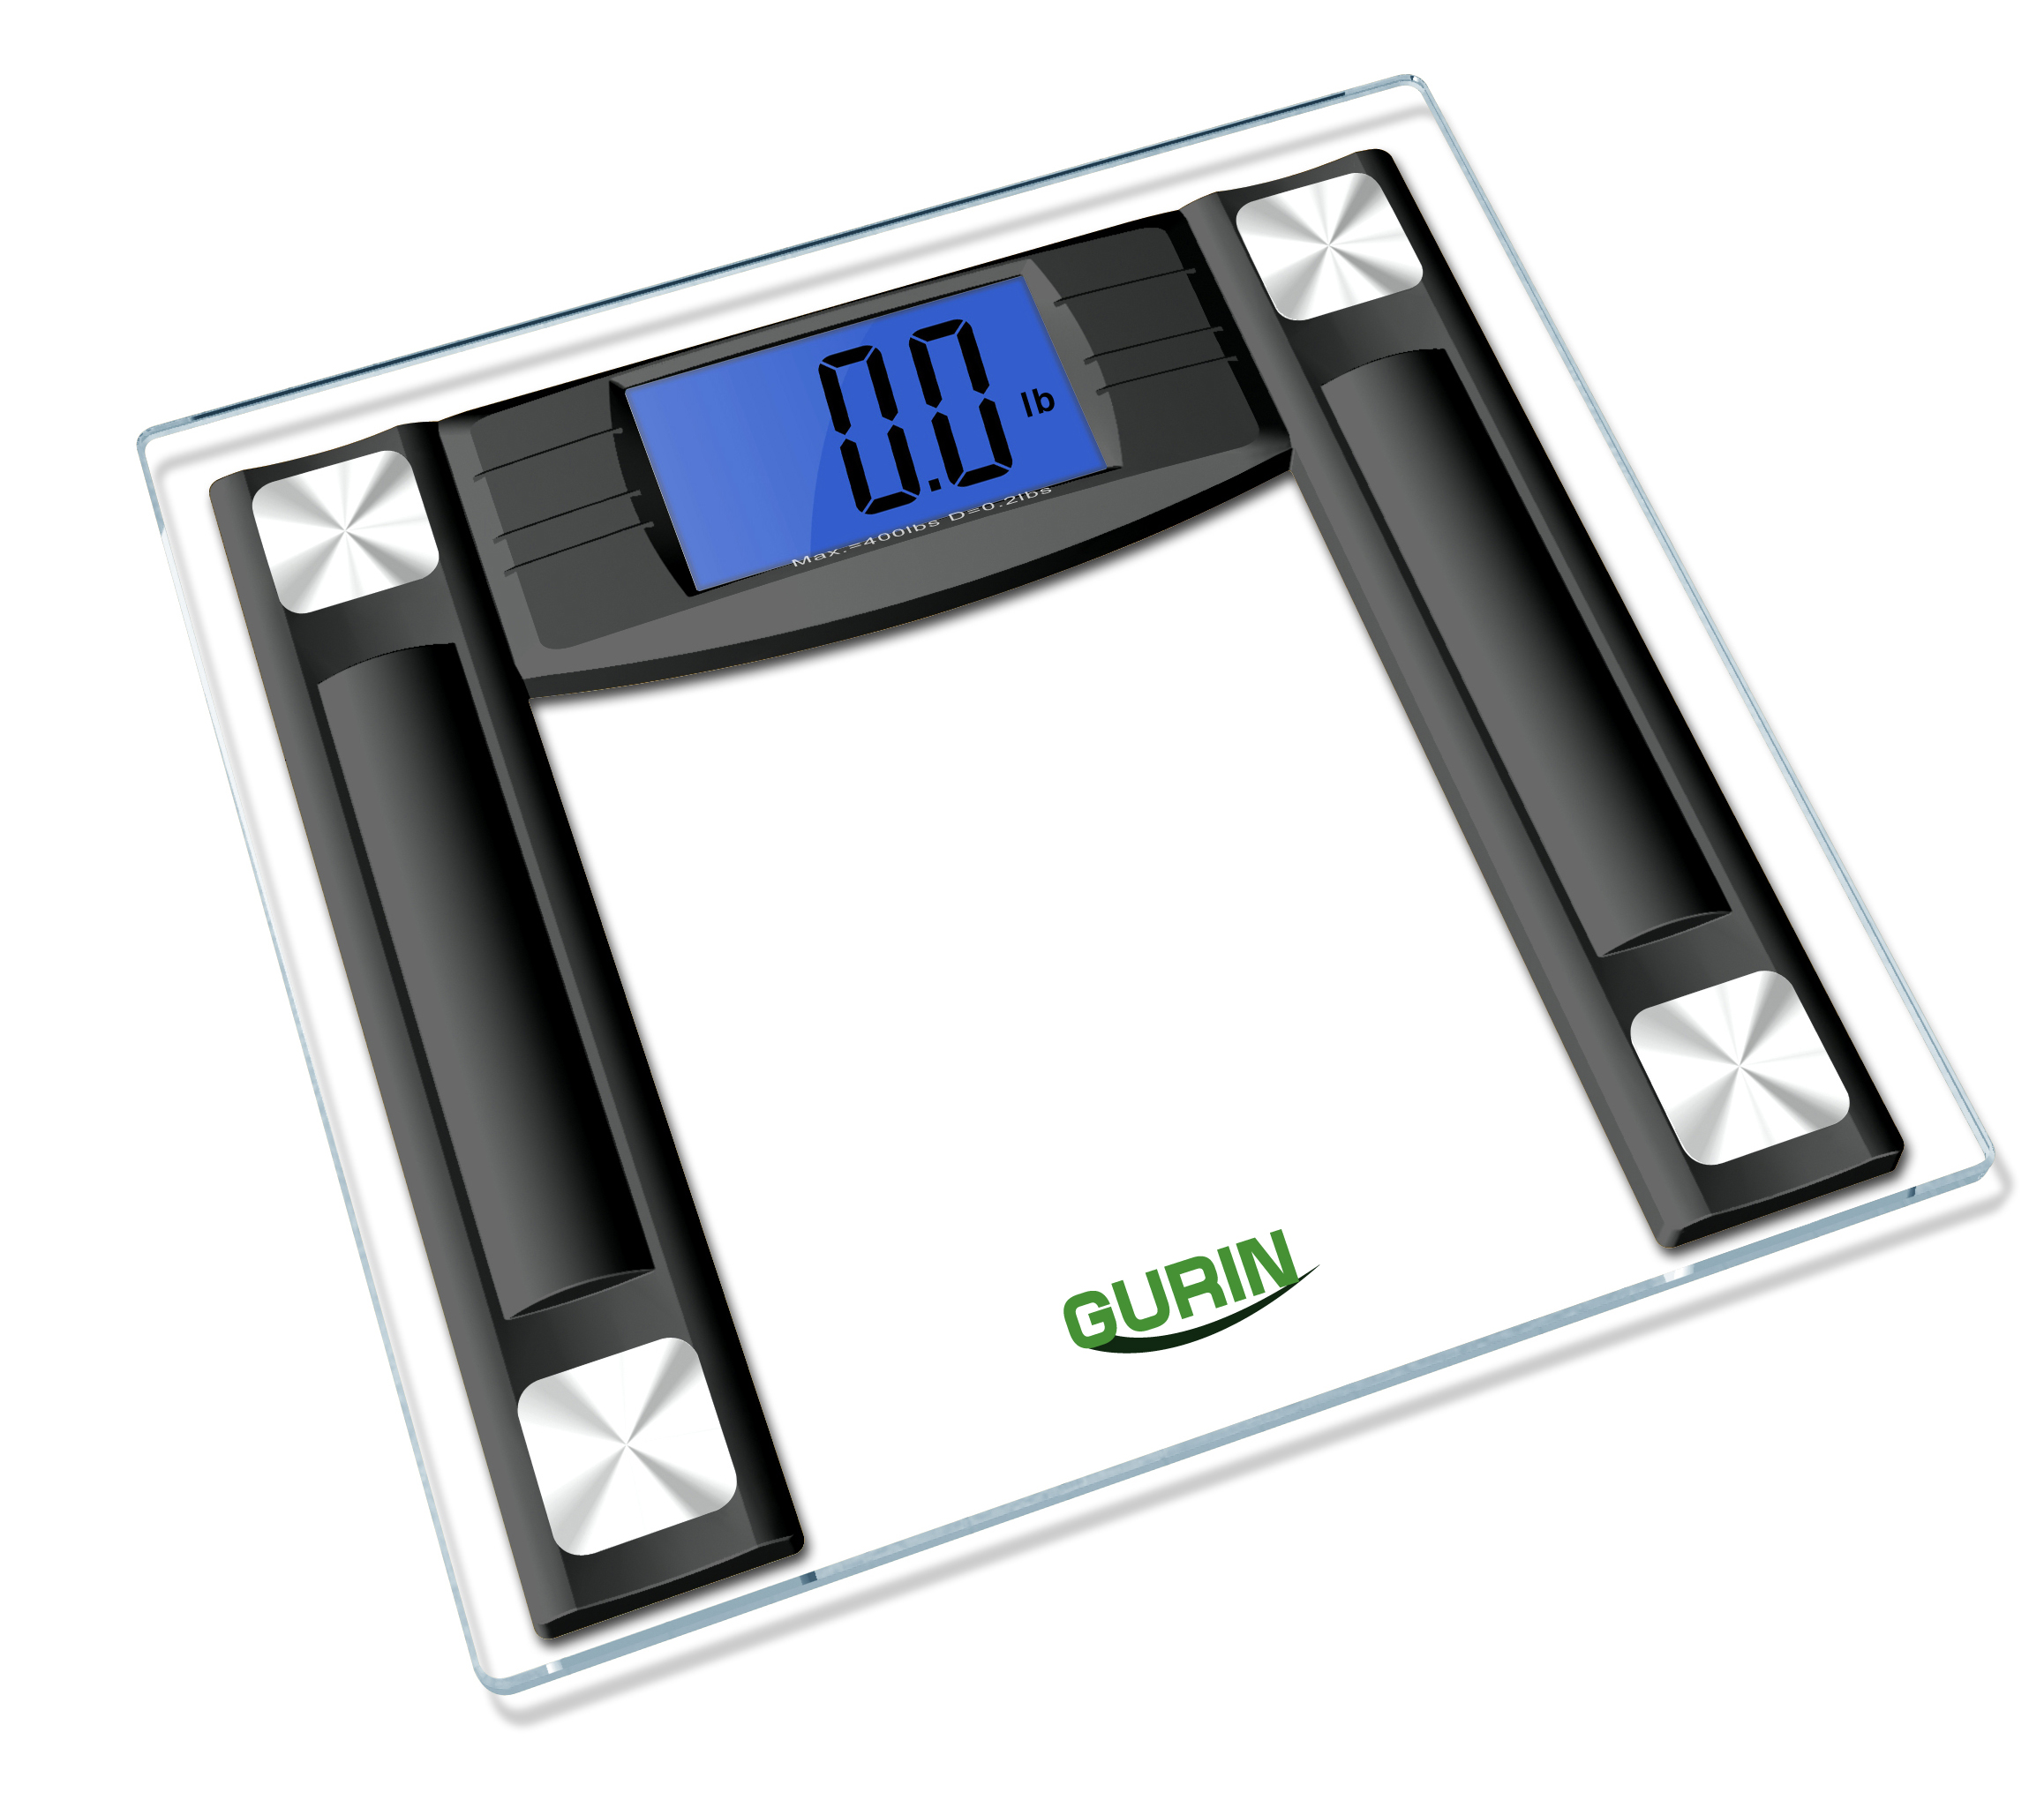 Most Accurate Bathroom Scale 2014: Gurin ACS-100 High Accuracy Digital Bathroom Scale